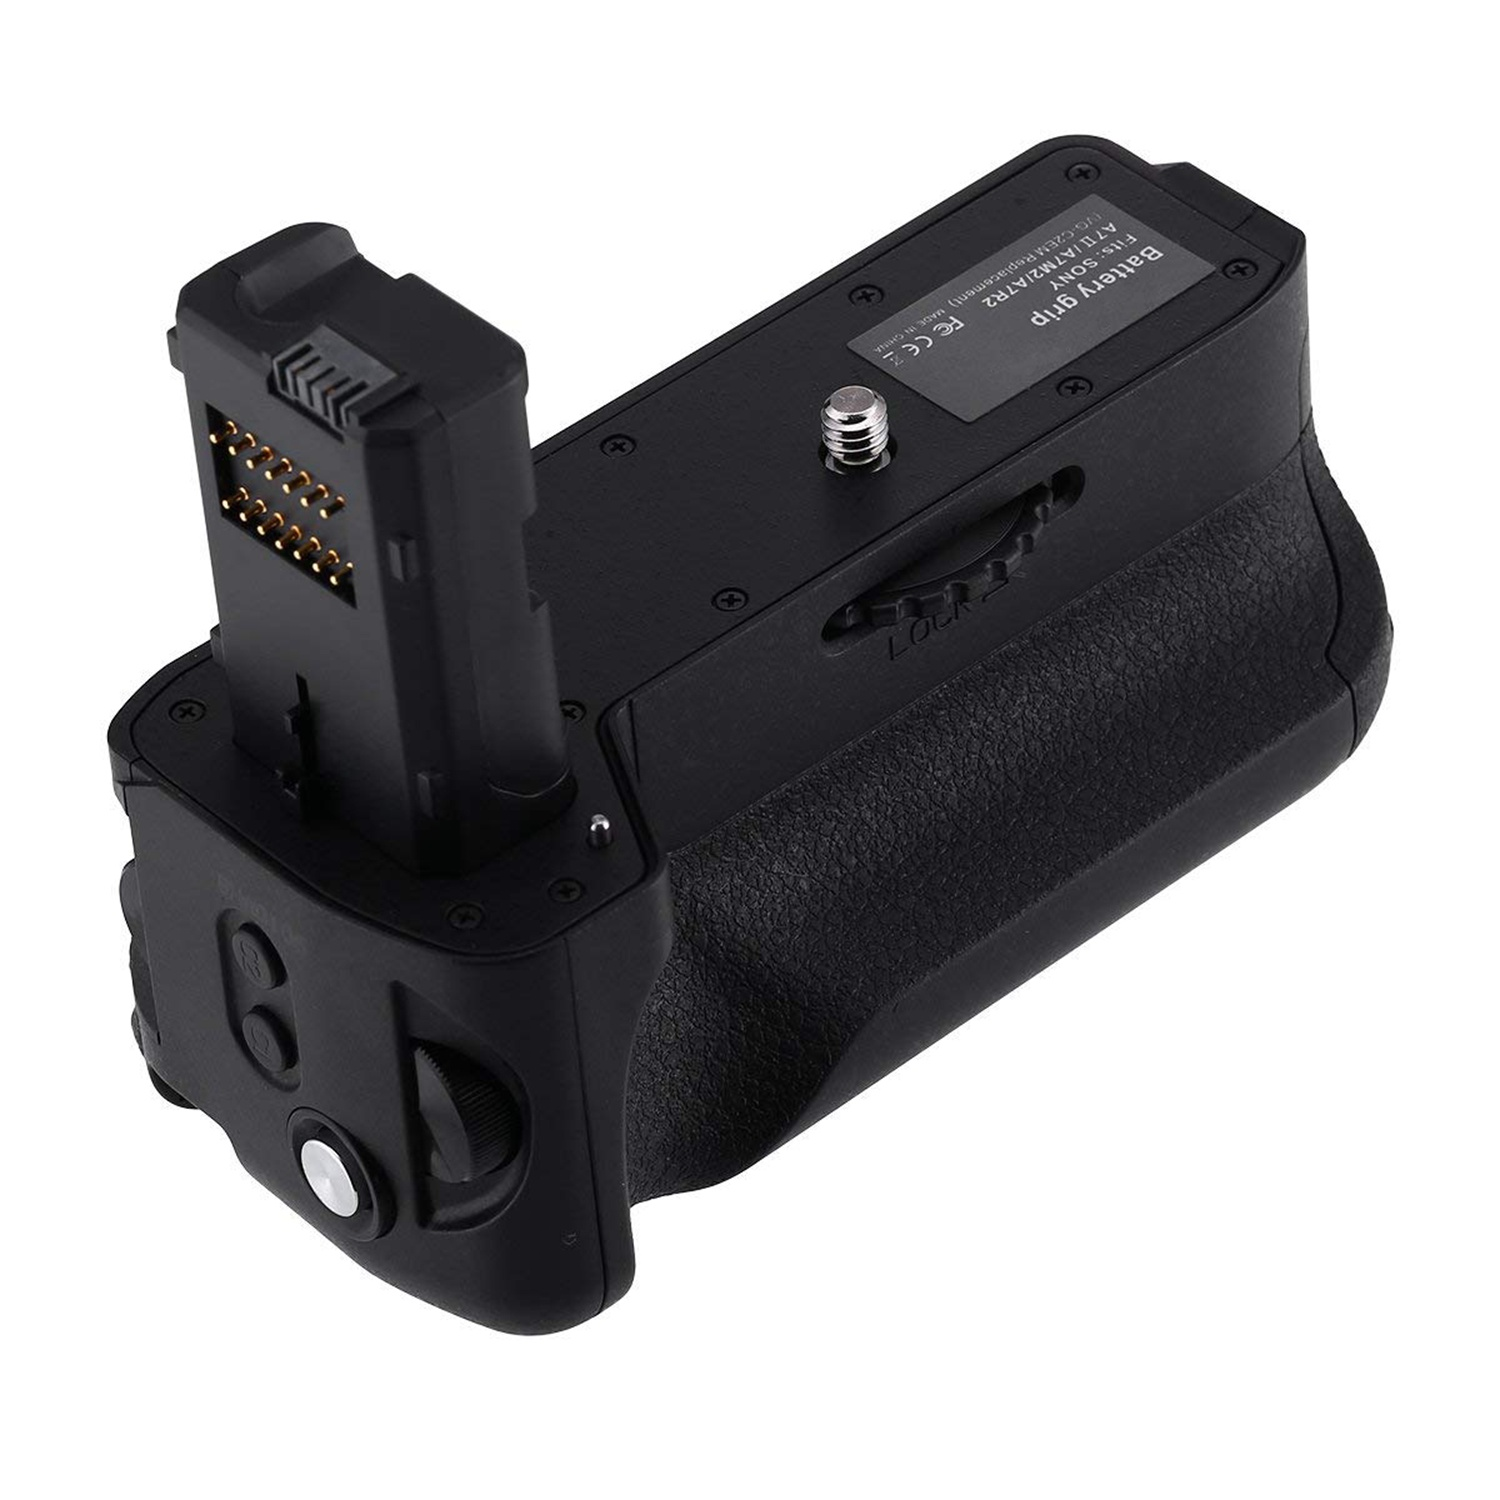 Vg-C2Em Battery Grip Replacement For <font><b>Sony</b></font> Alpha <font><b>A7Ii</b></font>/A7S Ii/A7R Ii Digital Slr <font><b>Camera</b></font> Work With Np-Fw50 Battery image